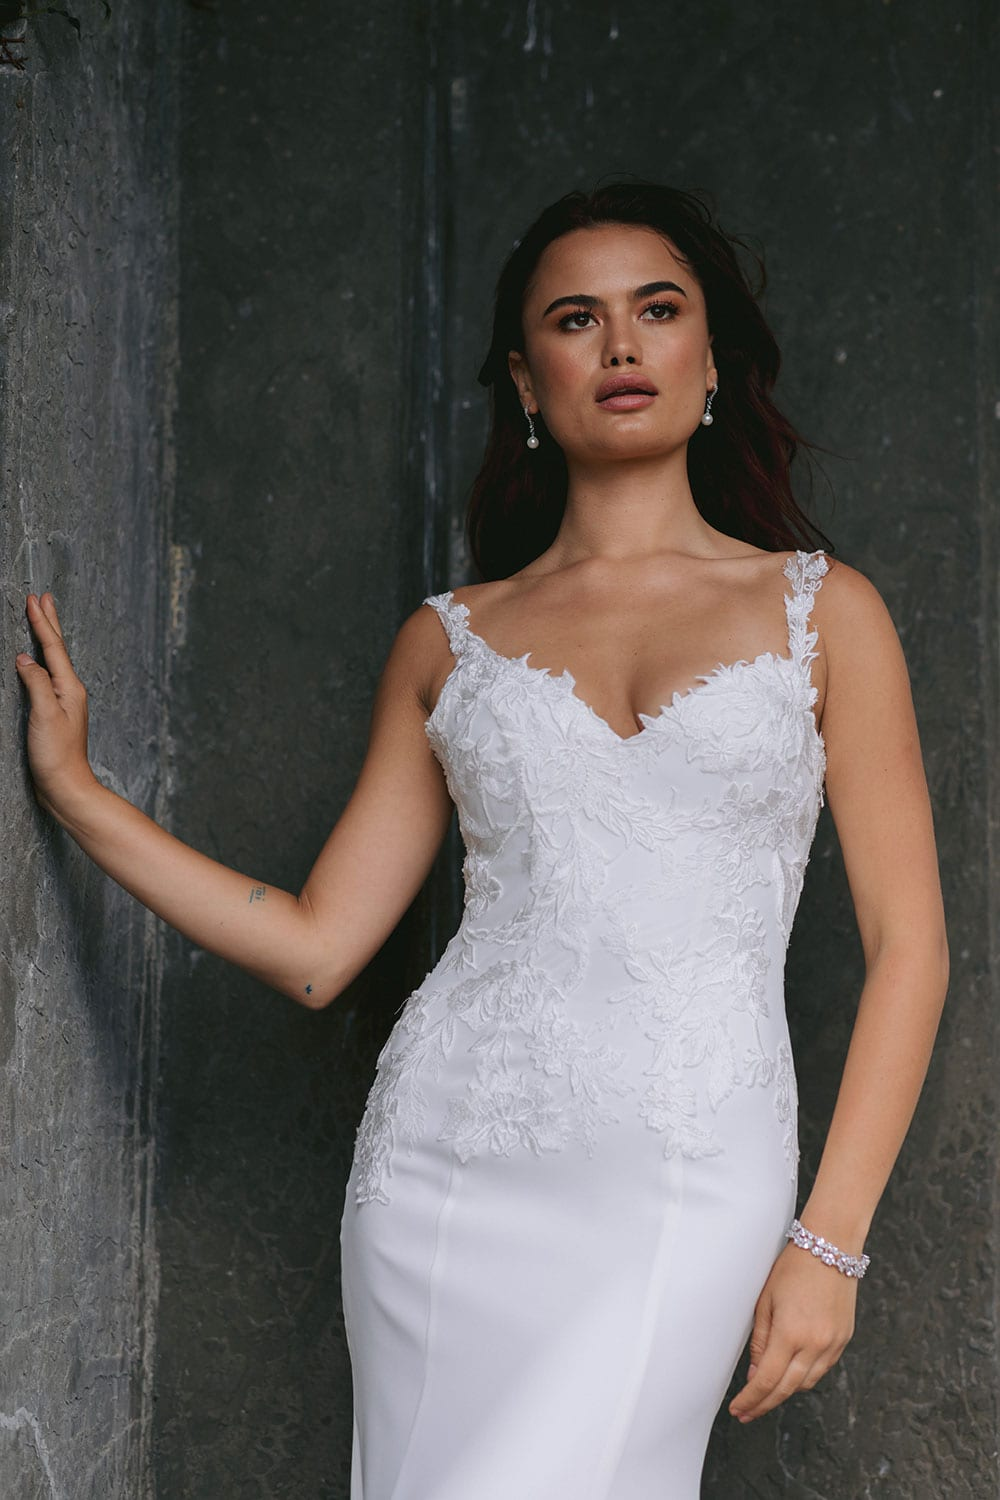 Ana Wedding gown from Vinka Design - This beautiful gown is graced by hand-appliqued delicate floral leaf lace, subtly worked into the front of the bodice and more prominently on the back. A fit-and-flare cut shapes the figure. Model wearing gown highlighting fit and flare bodice lace detail.